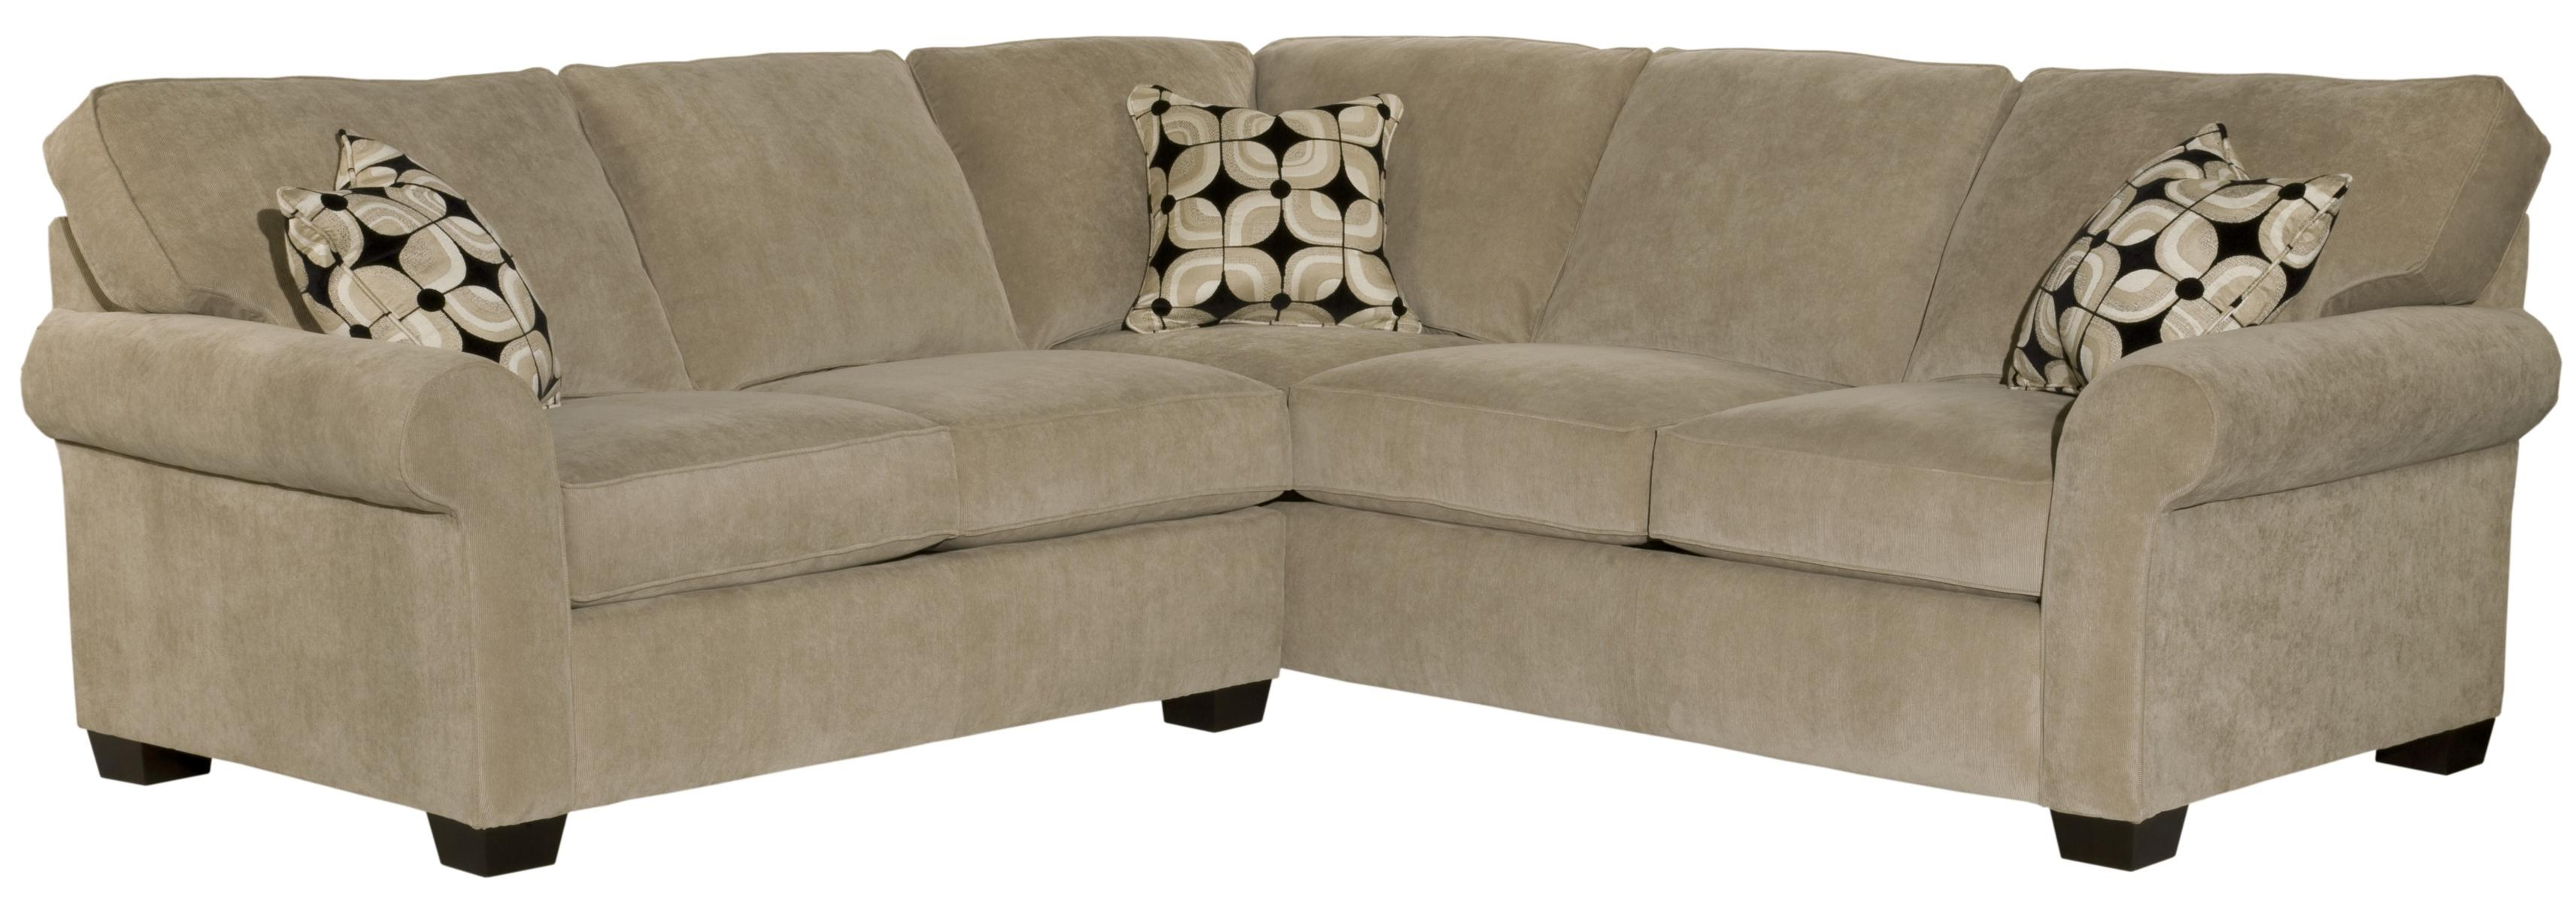 Broyhill Furniture Ethan Two Piece Sectional With Corner Sofa With Broyhill Sectional Sofas (#2 of 12)